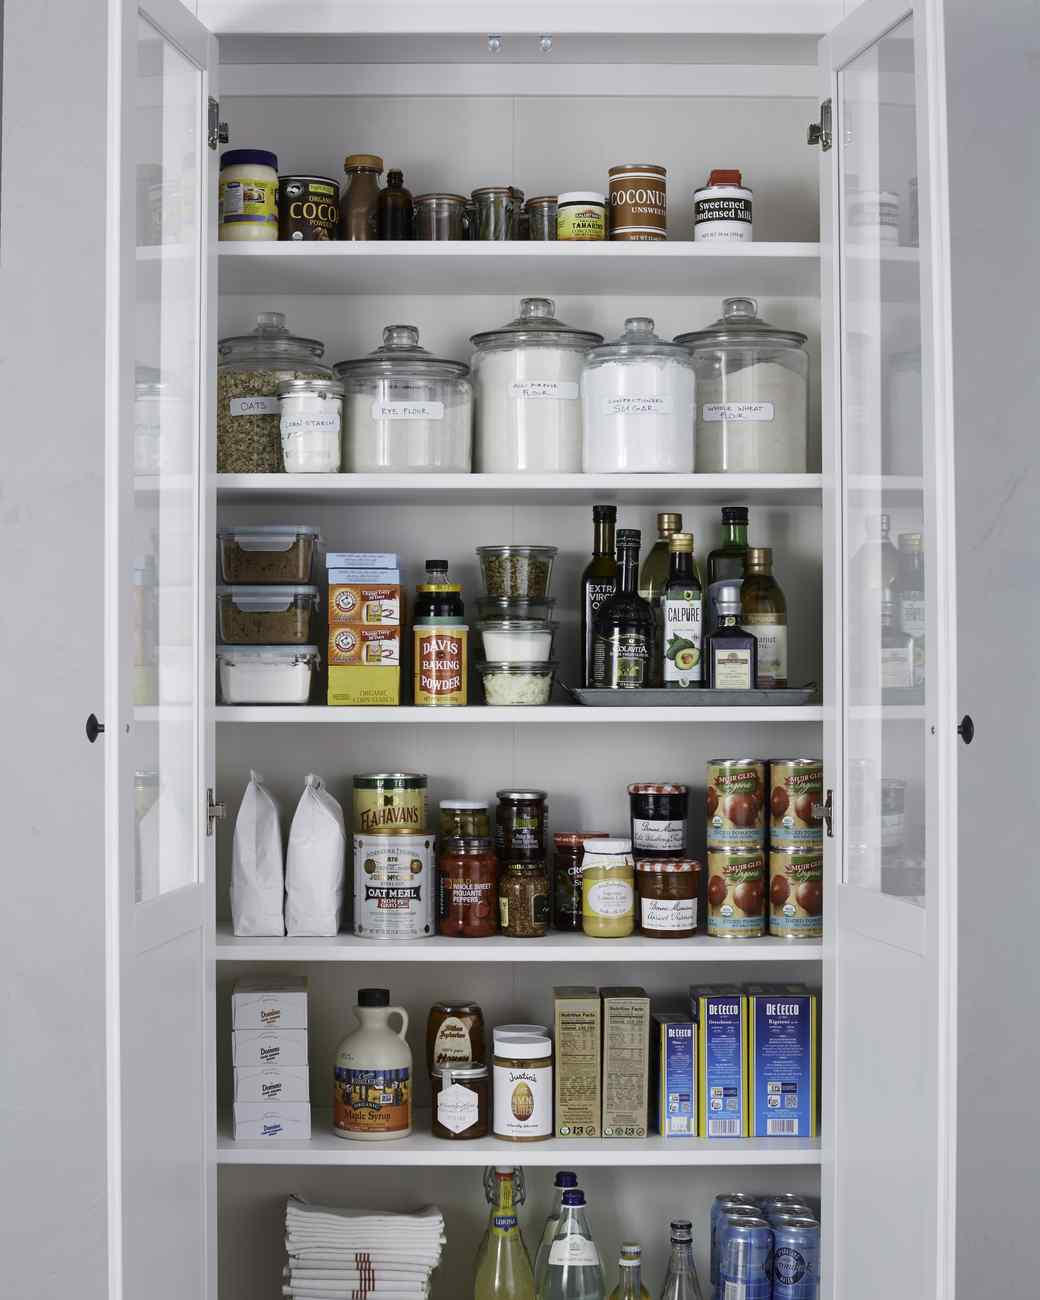 Effective Pantry Shelving Designs For Well Organized: Small Kitchen Storage Ideas For A More Efficient Space